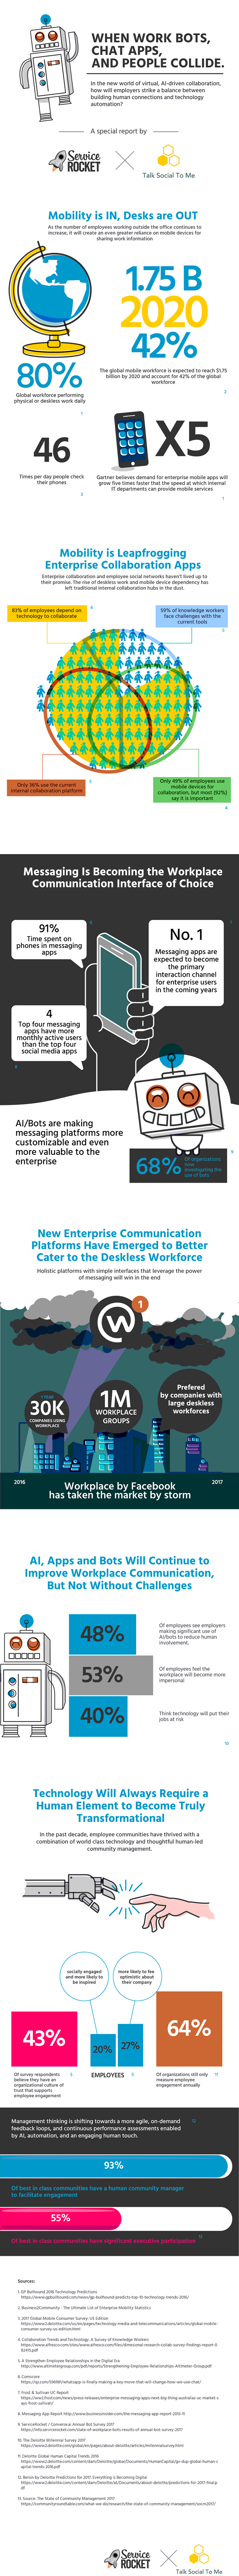 ServiceRocket and Talk Social to Me Workplace by Facebook Elevate Adoption Program